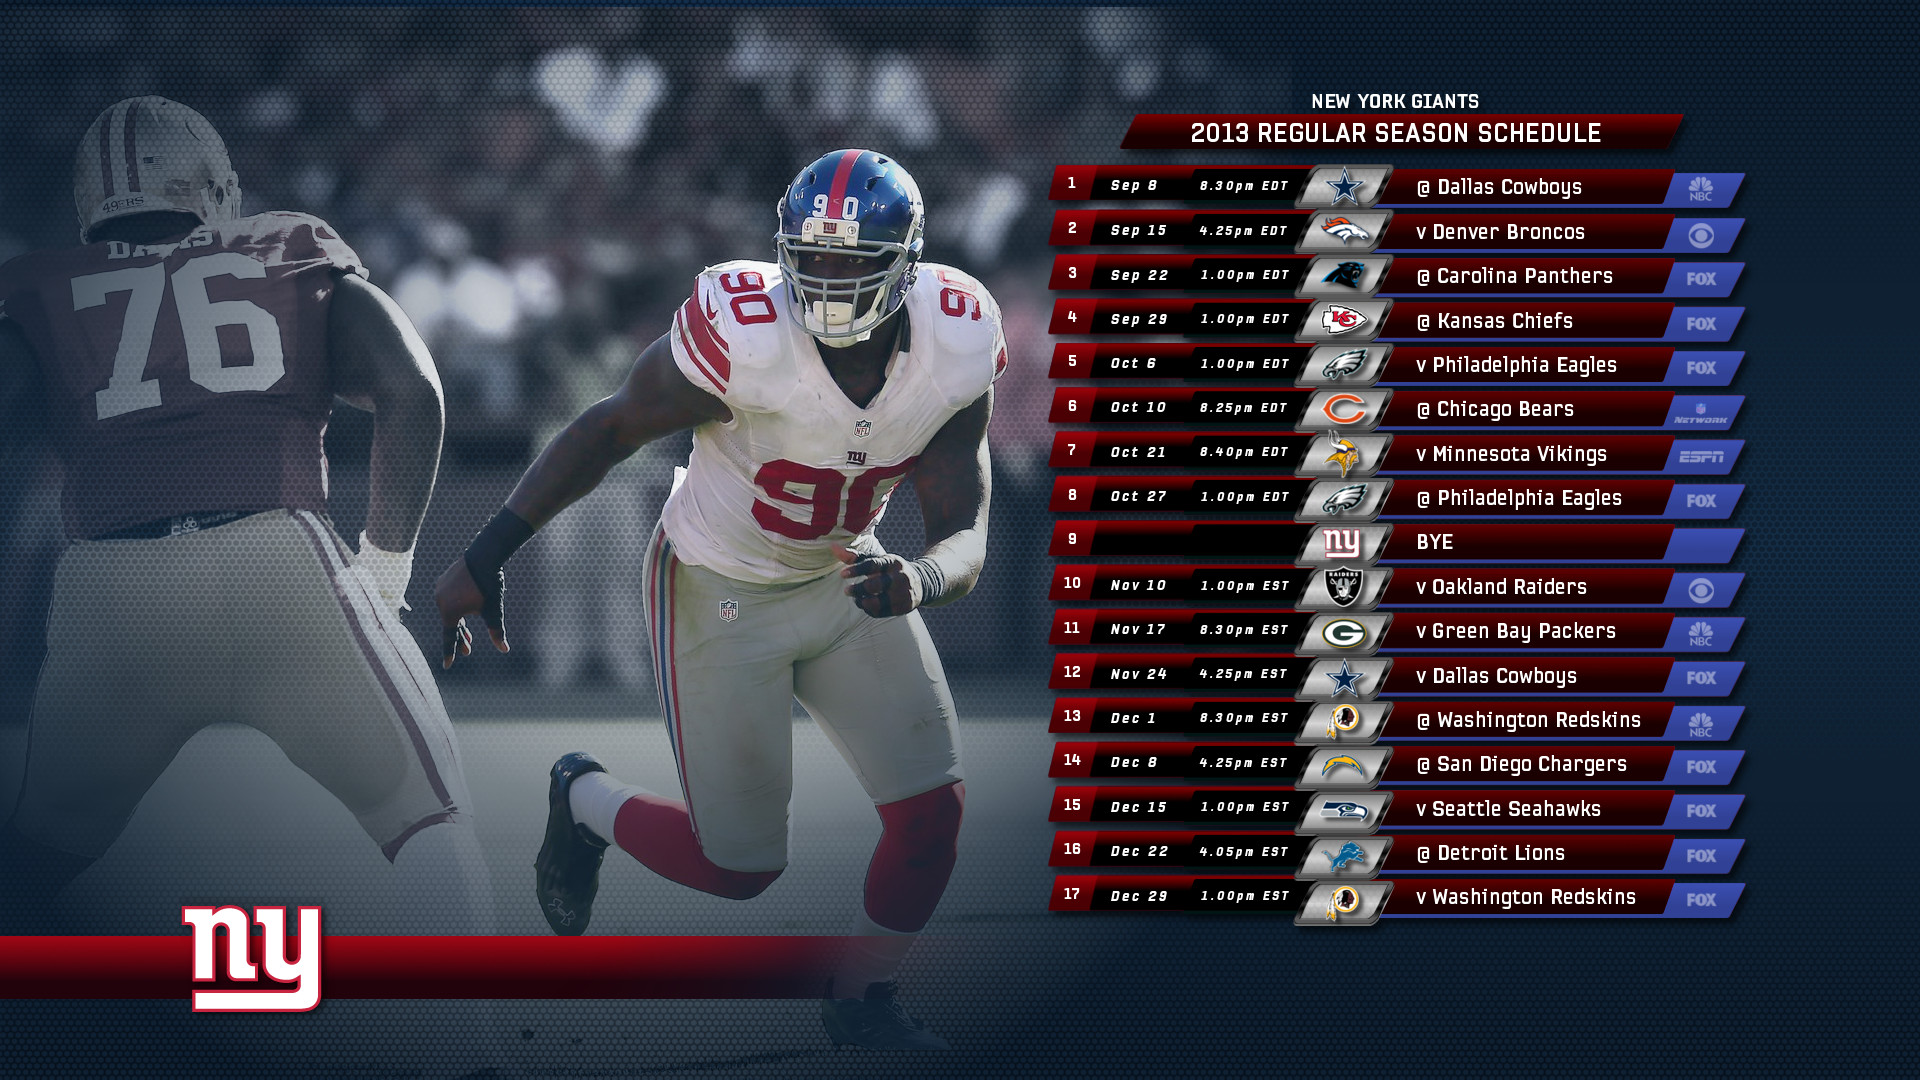 NY Giants Wallpaper And Screensaver (66+ Images